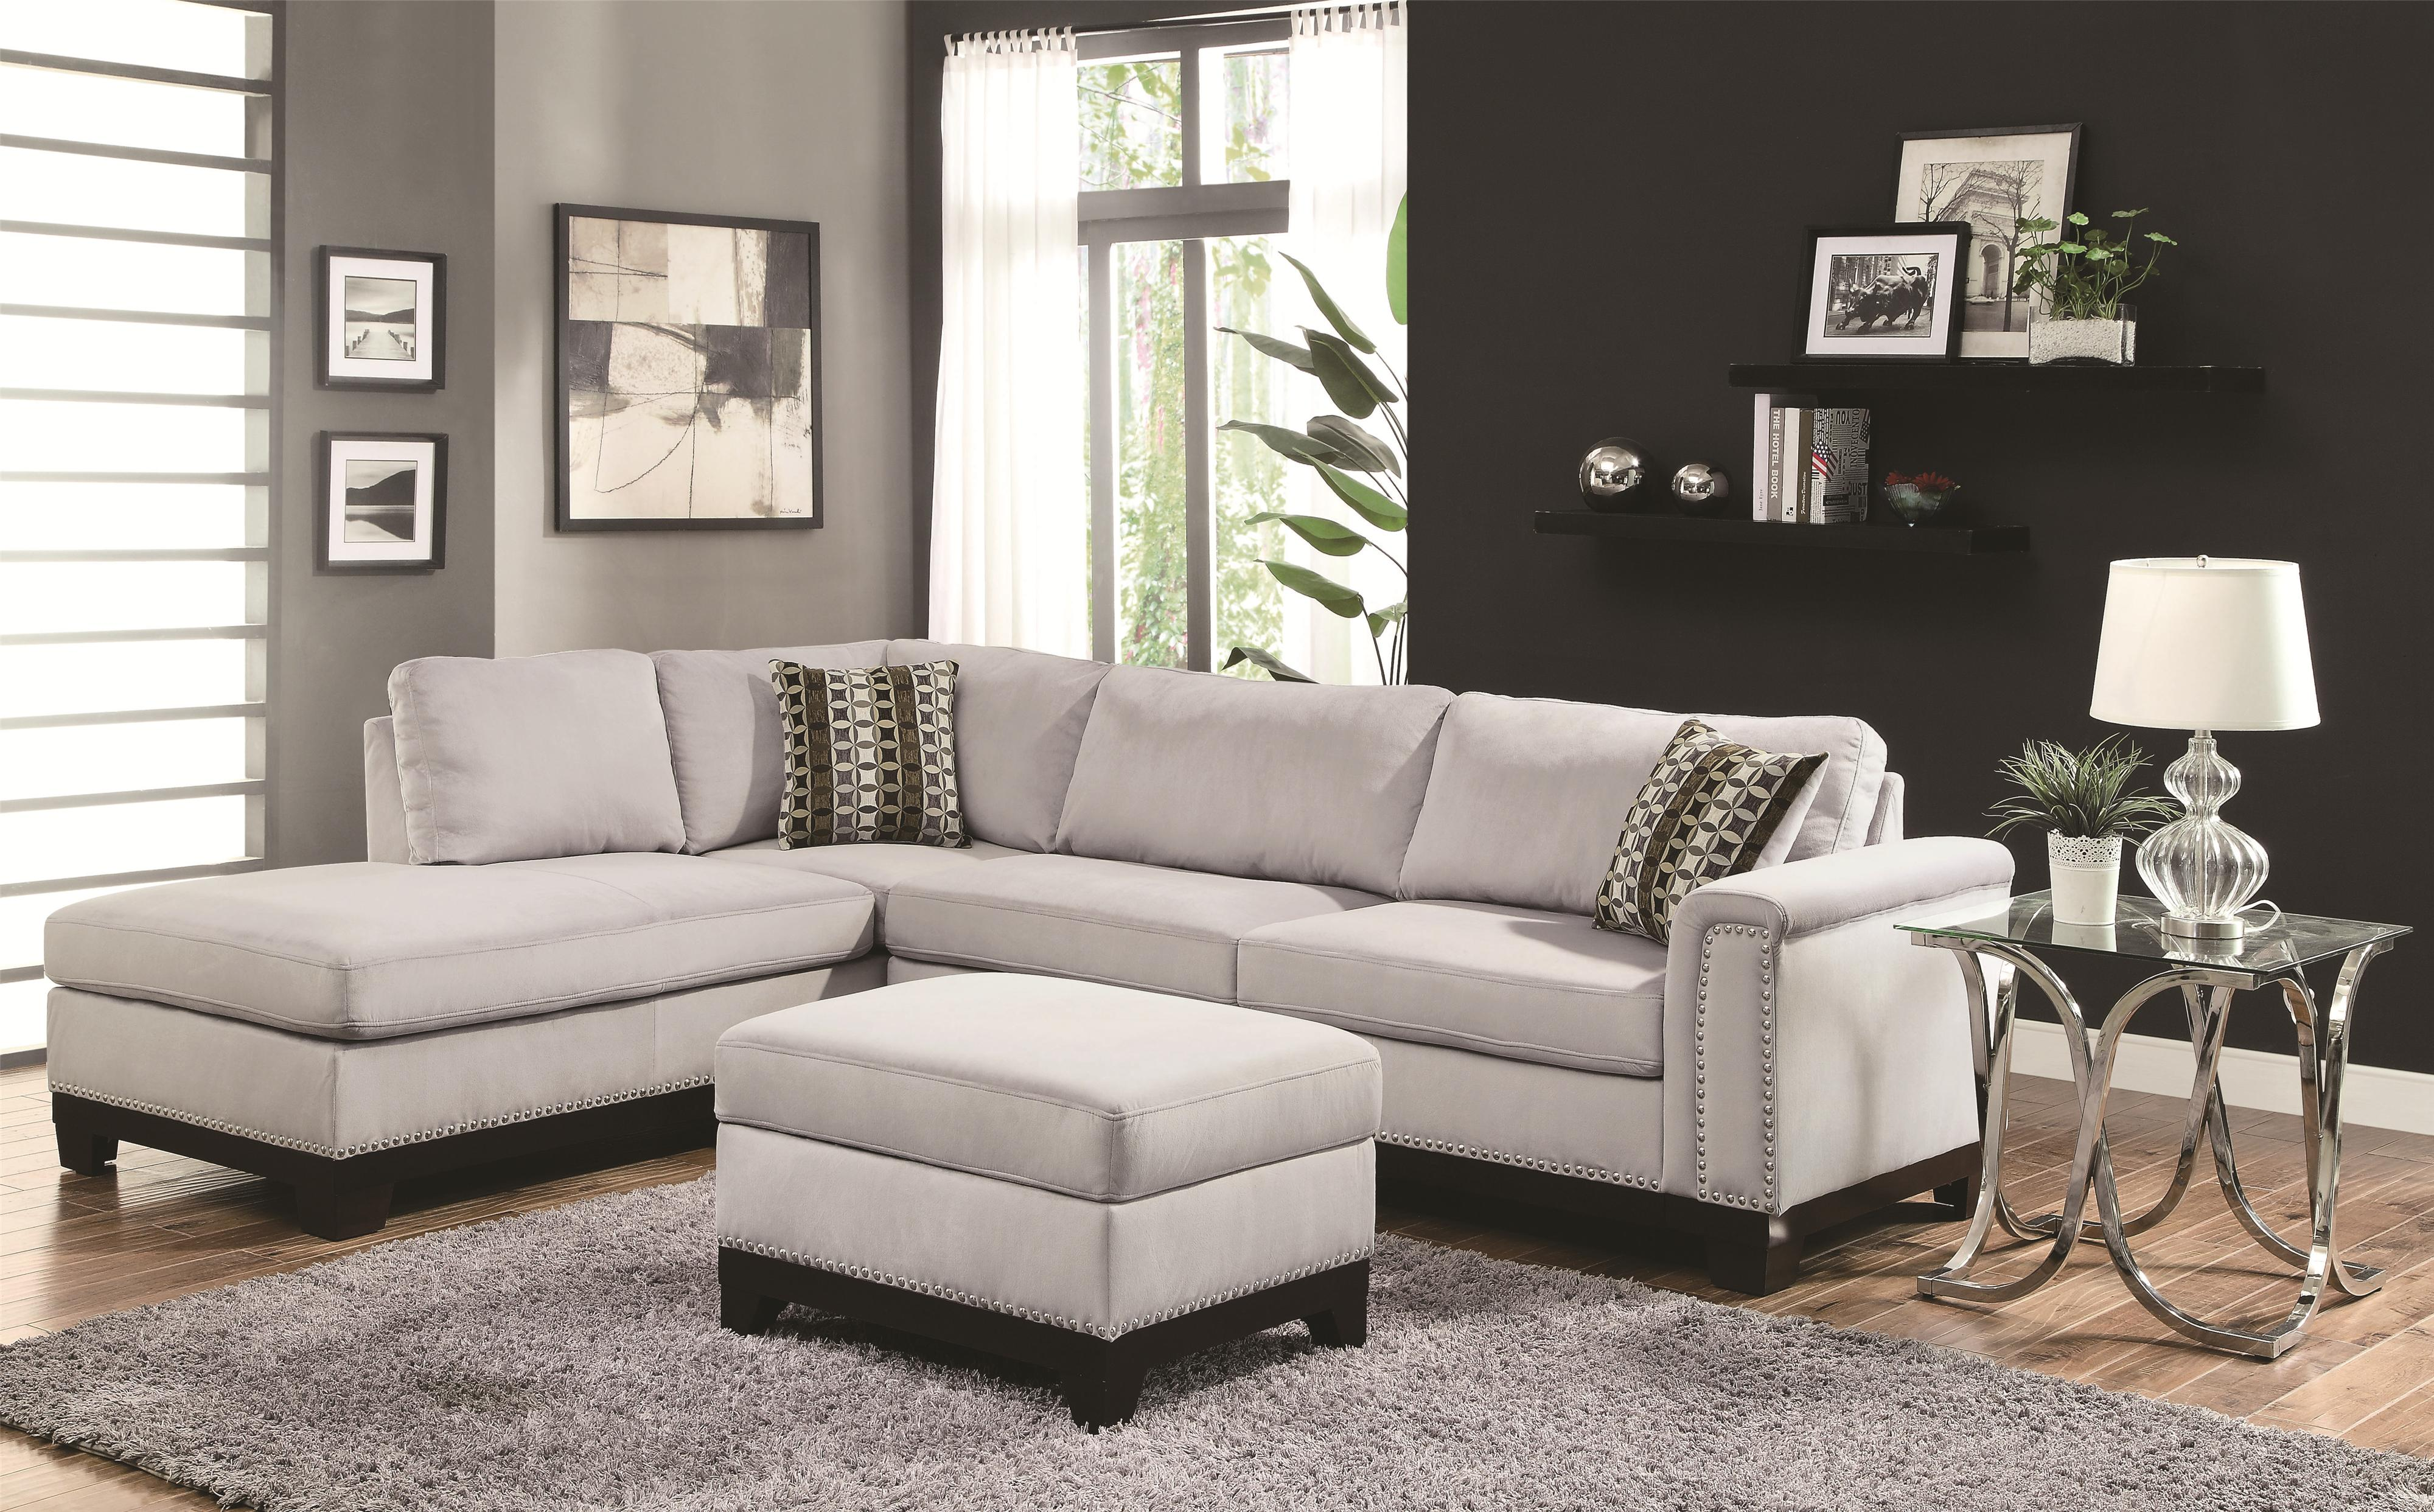 Coaster Mason Stationary Living Room Group - Item Number: 503600 Living Room Group 2